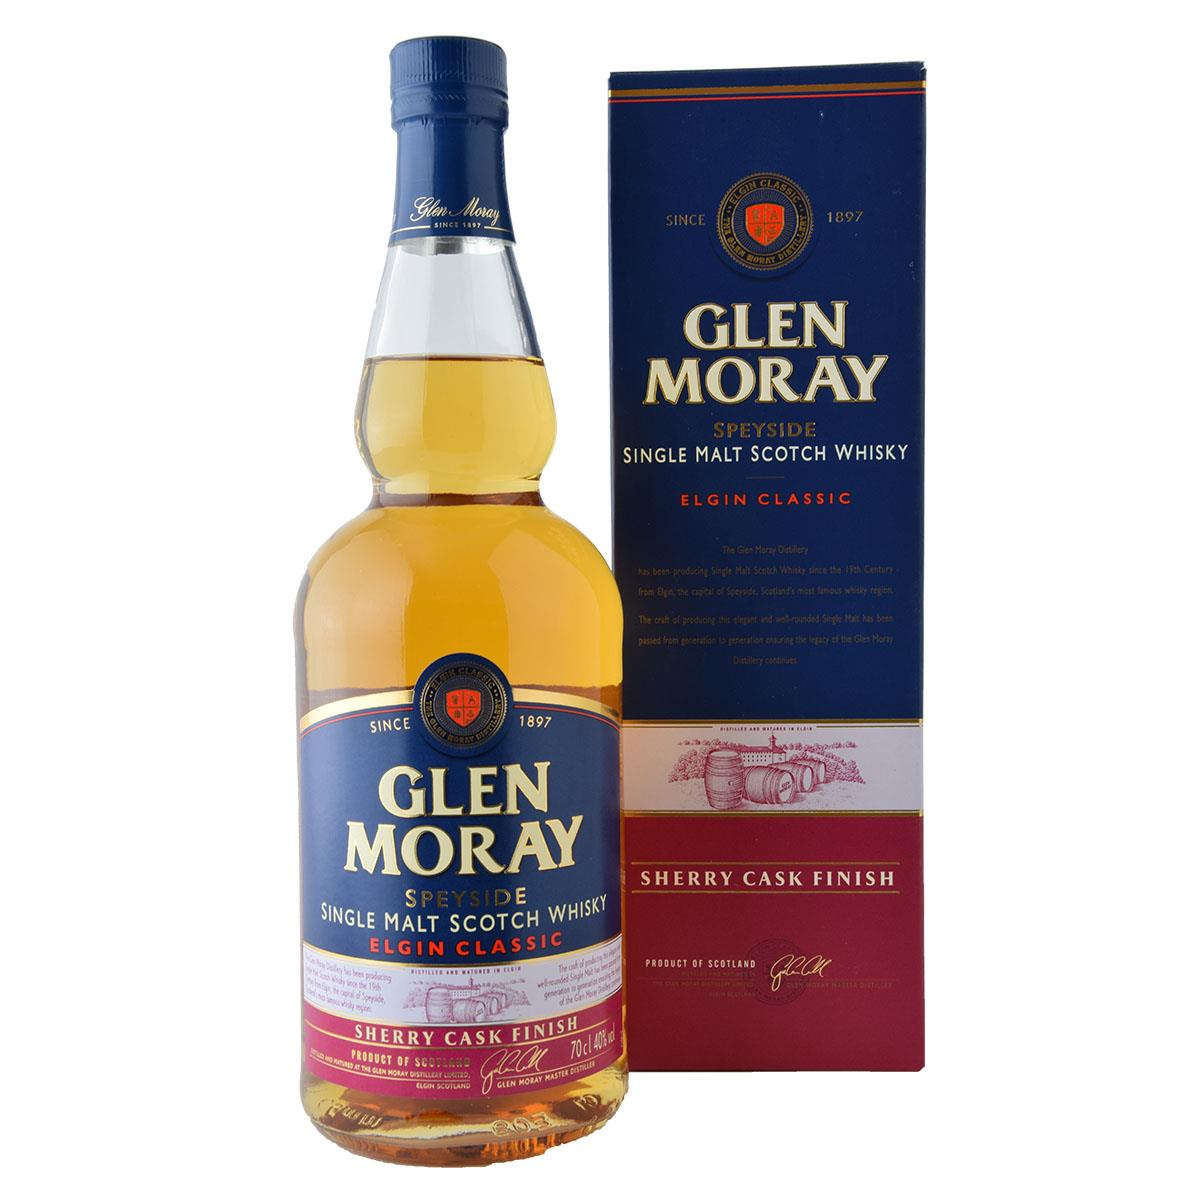 Glen Moray Sherry Cask Finish 700ml